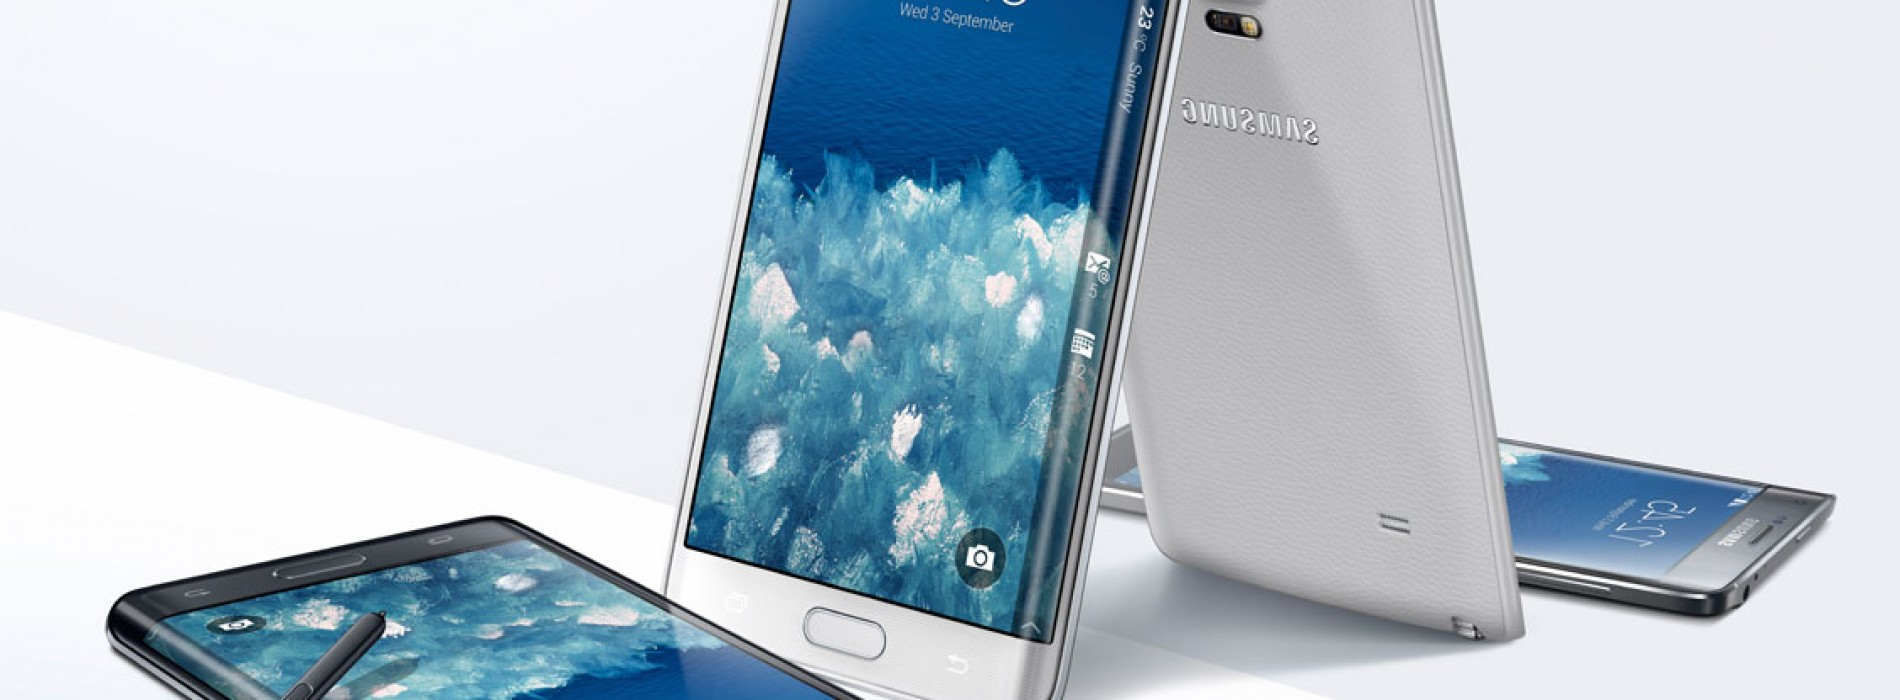 Samsung announces Galaxy Note 4, Note Edge, and Gear VR